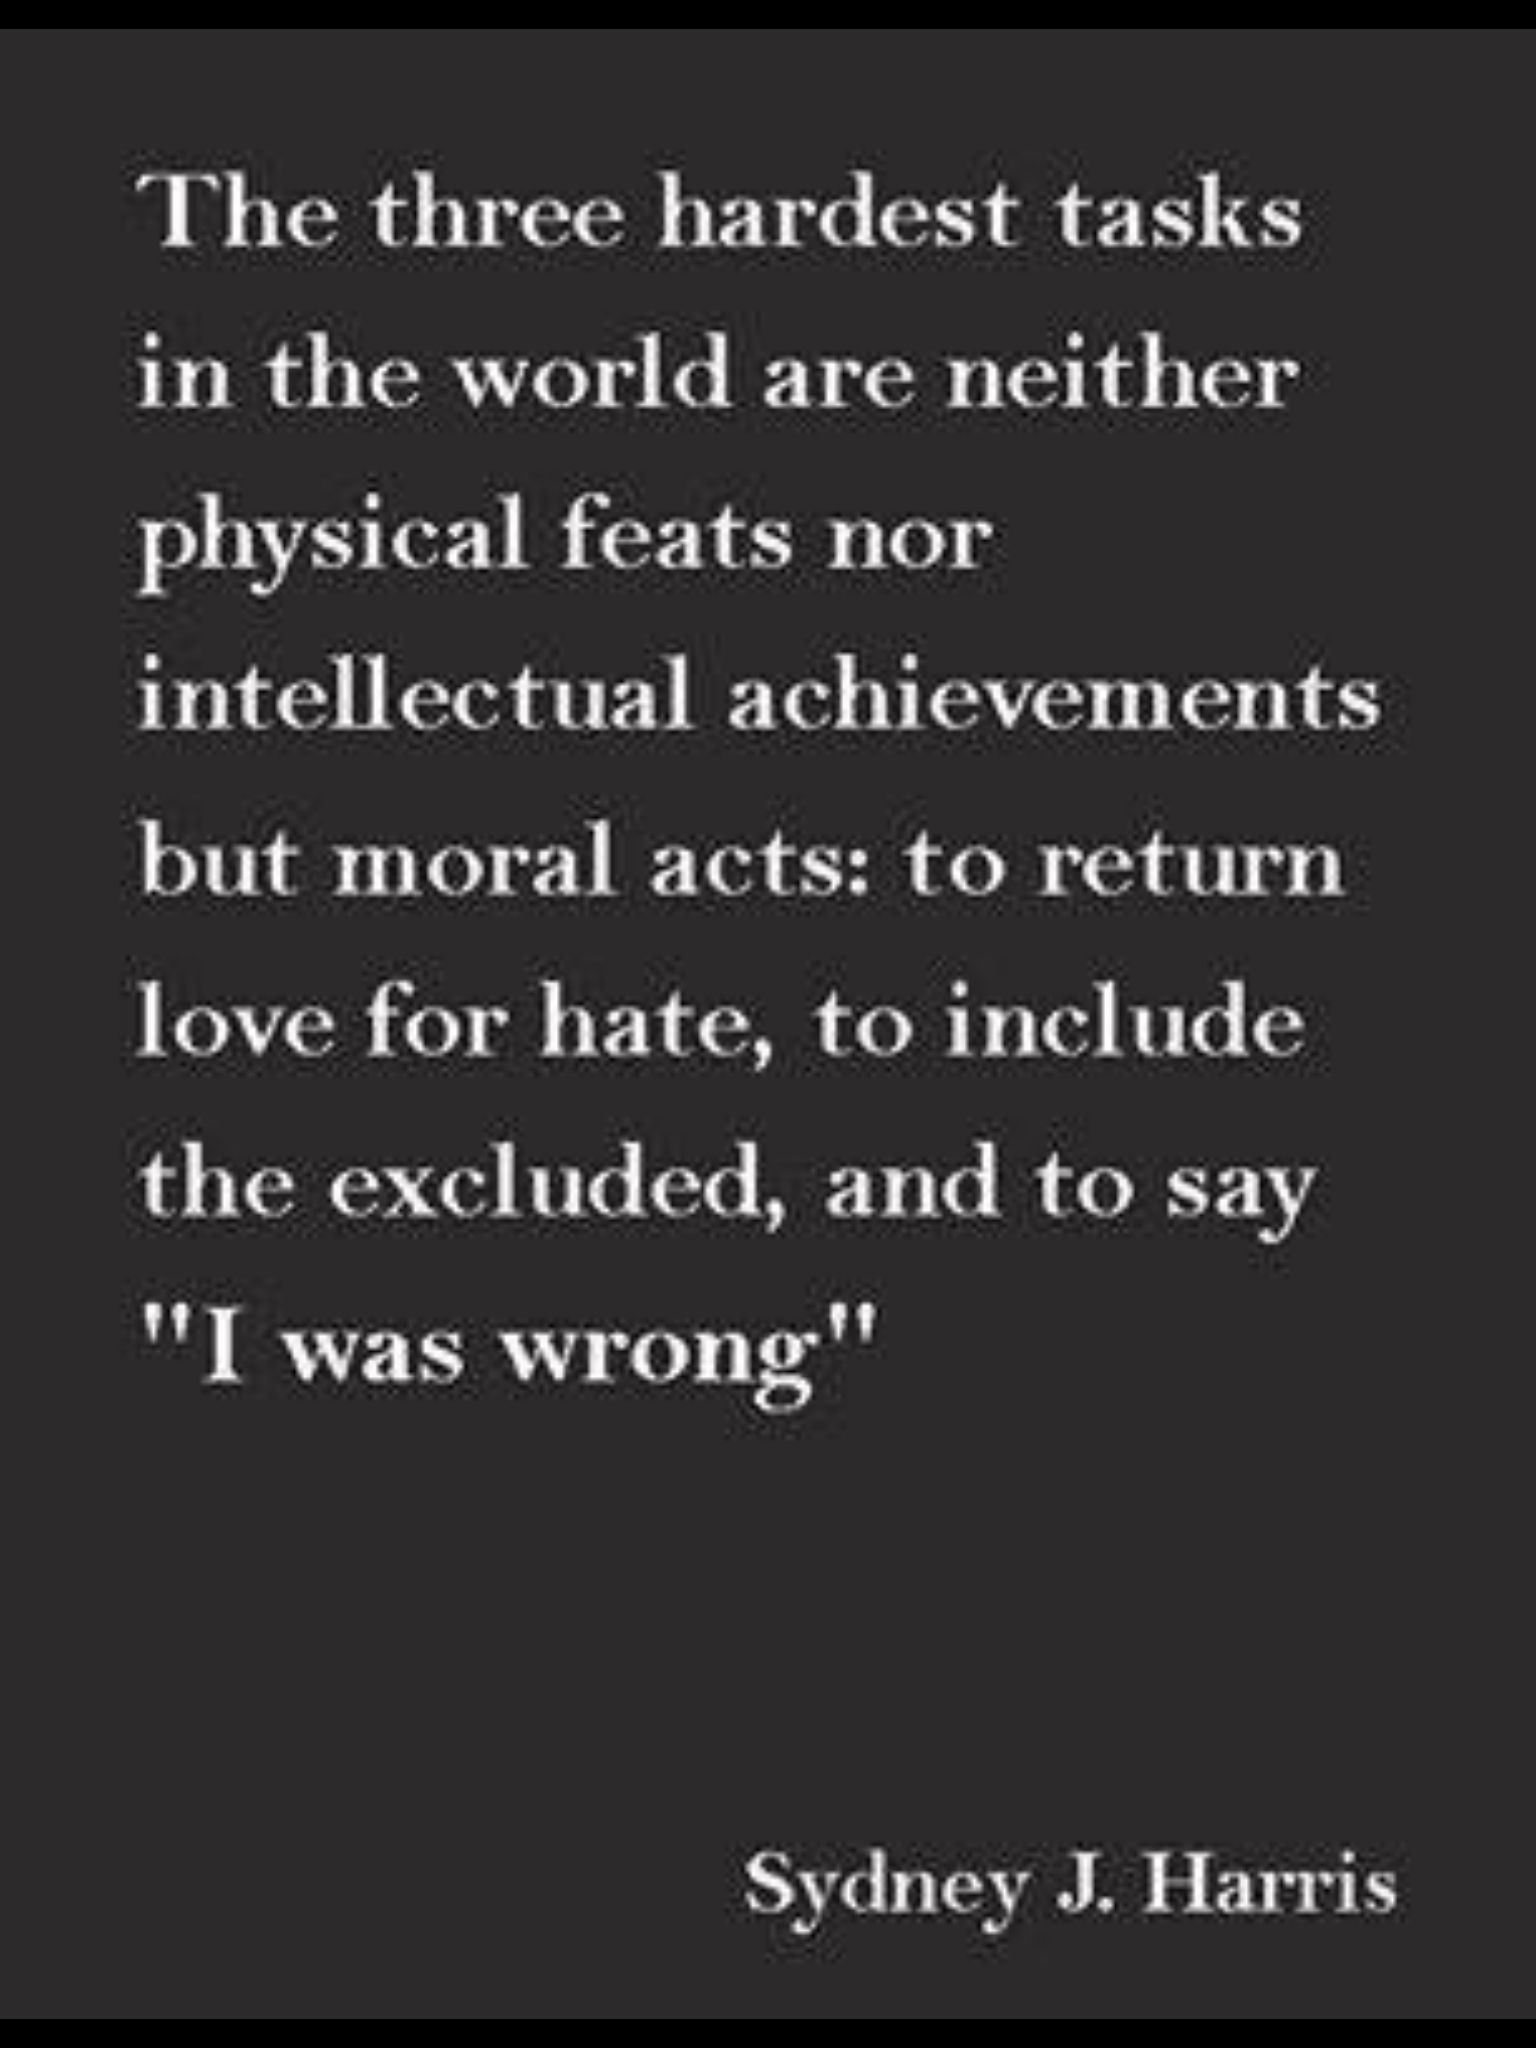 Moral Quotes About Love I Find These To Be Very Easy Tasks Life  Pinterest  Dalai